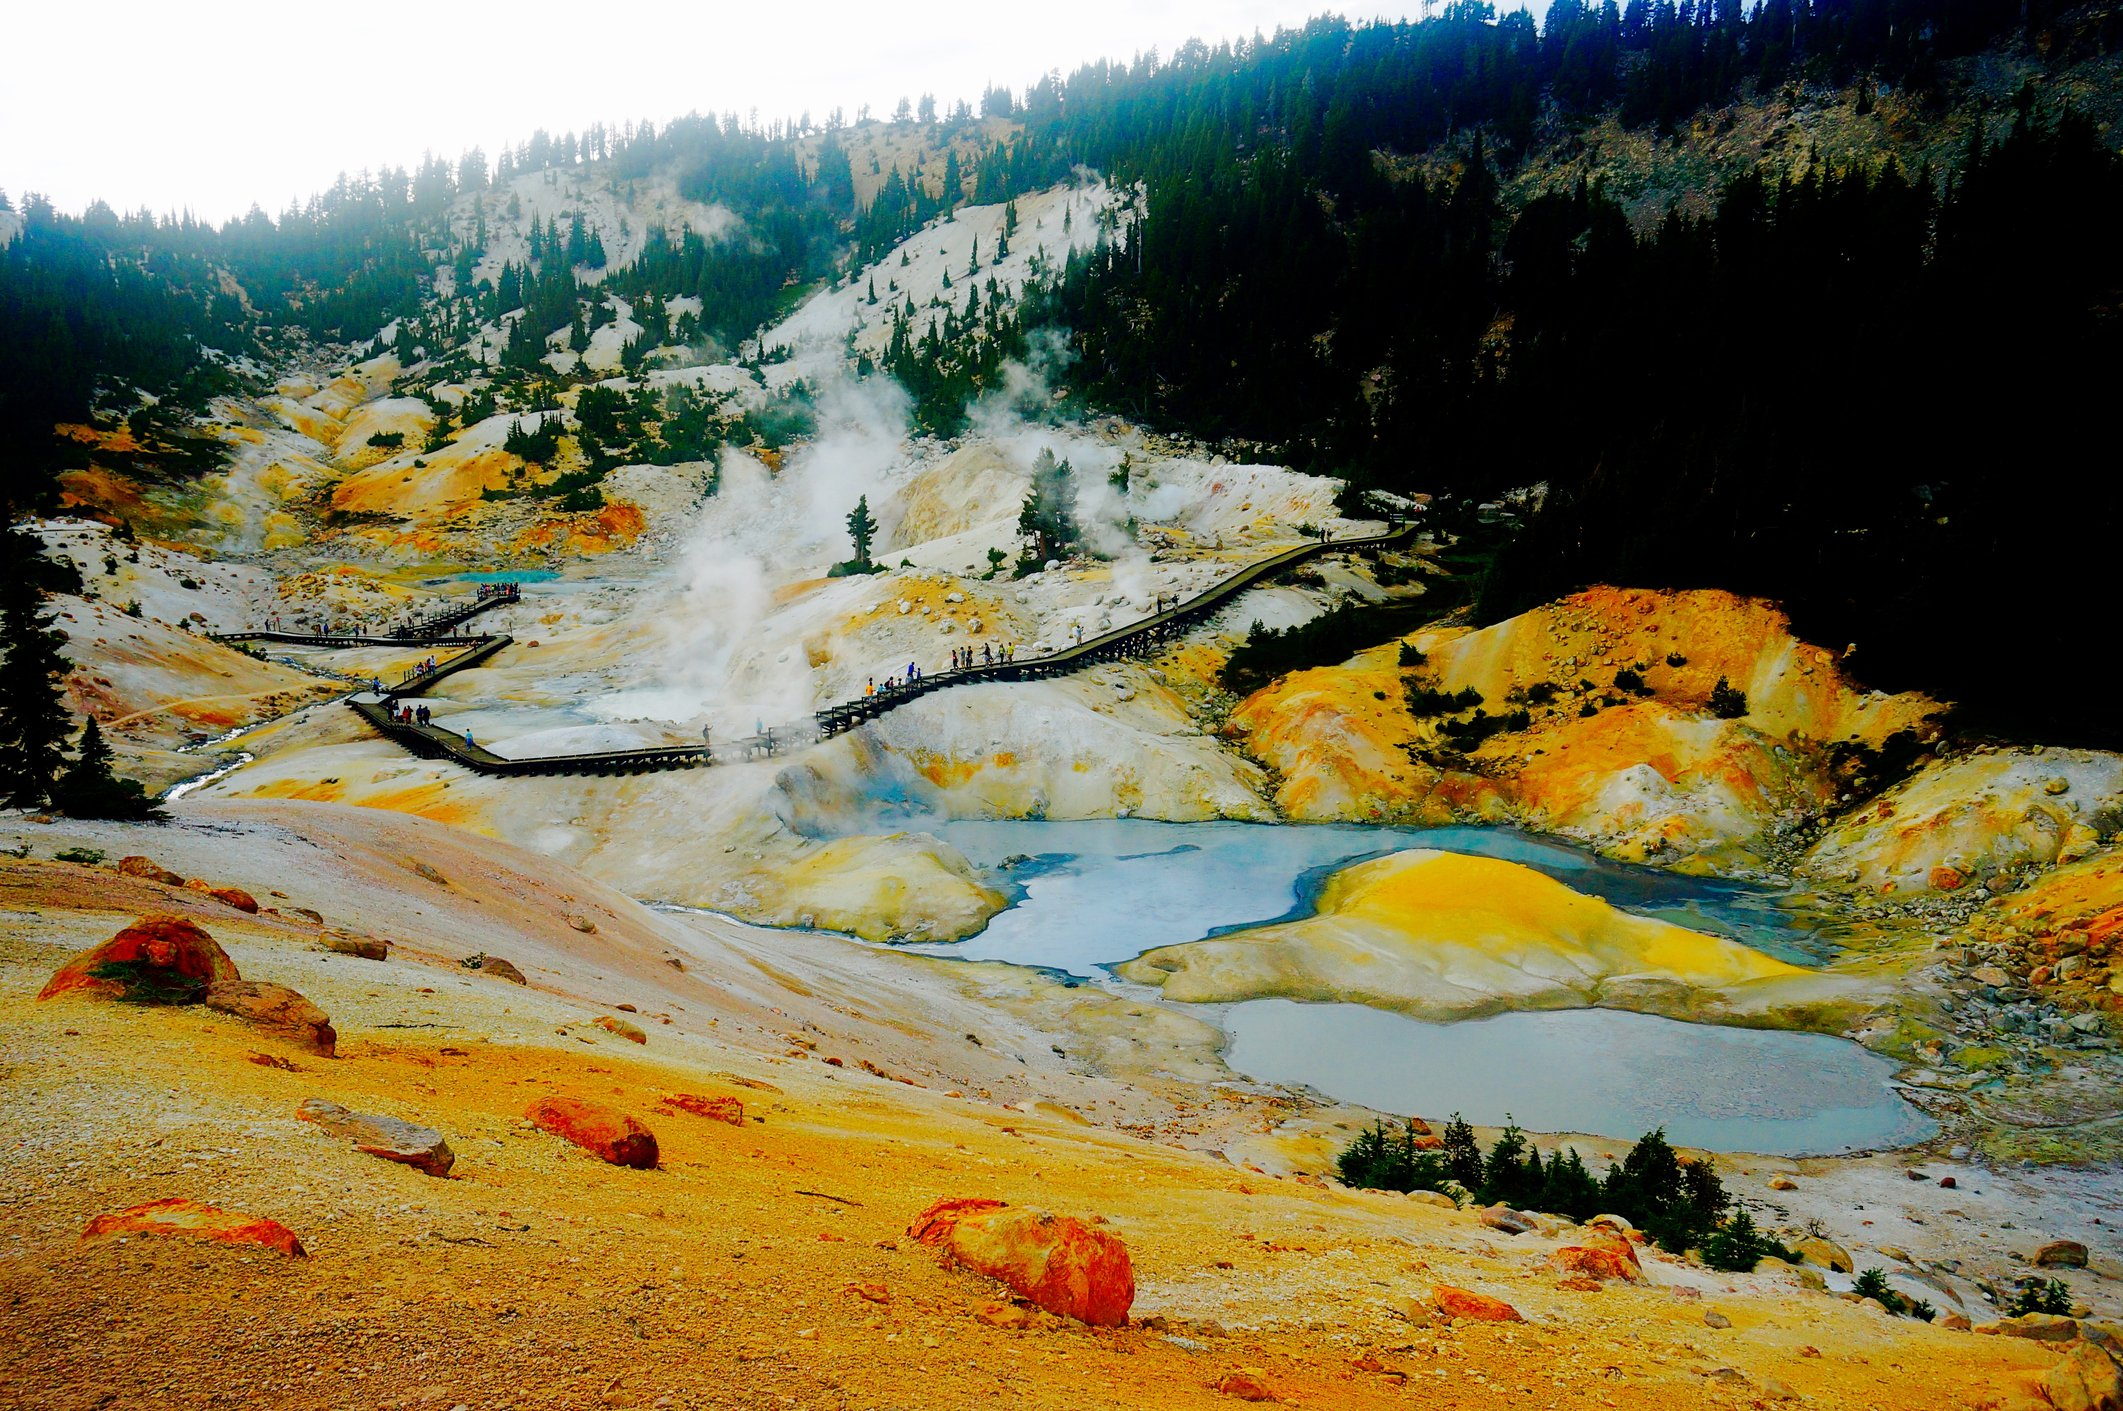 Steam is released from the Lassen hydrothermal system in the Bumpass Hell area.